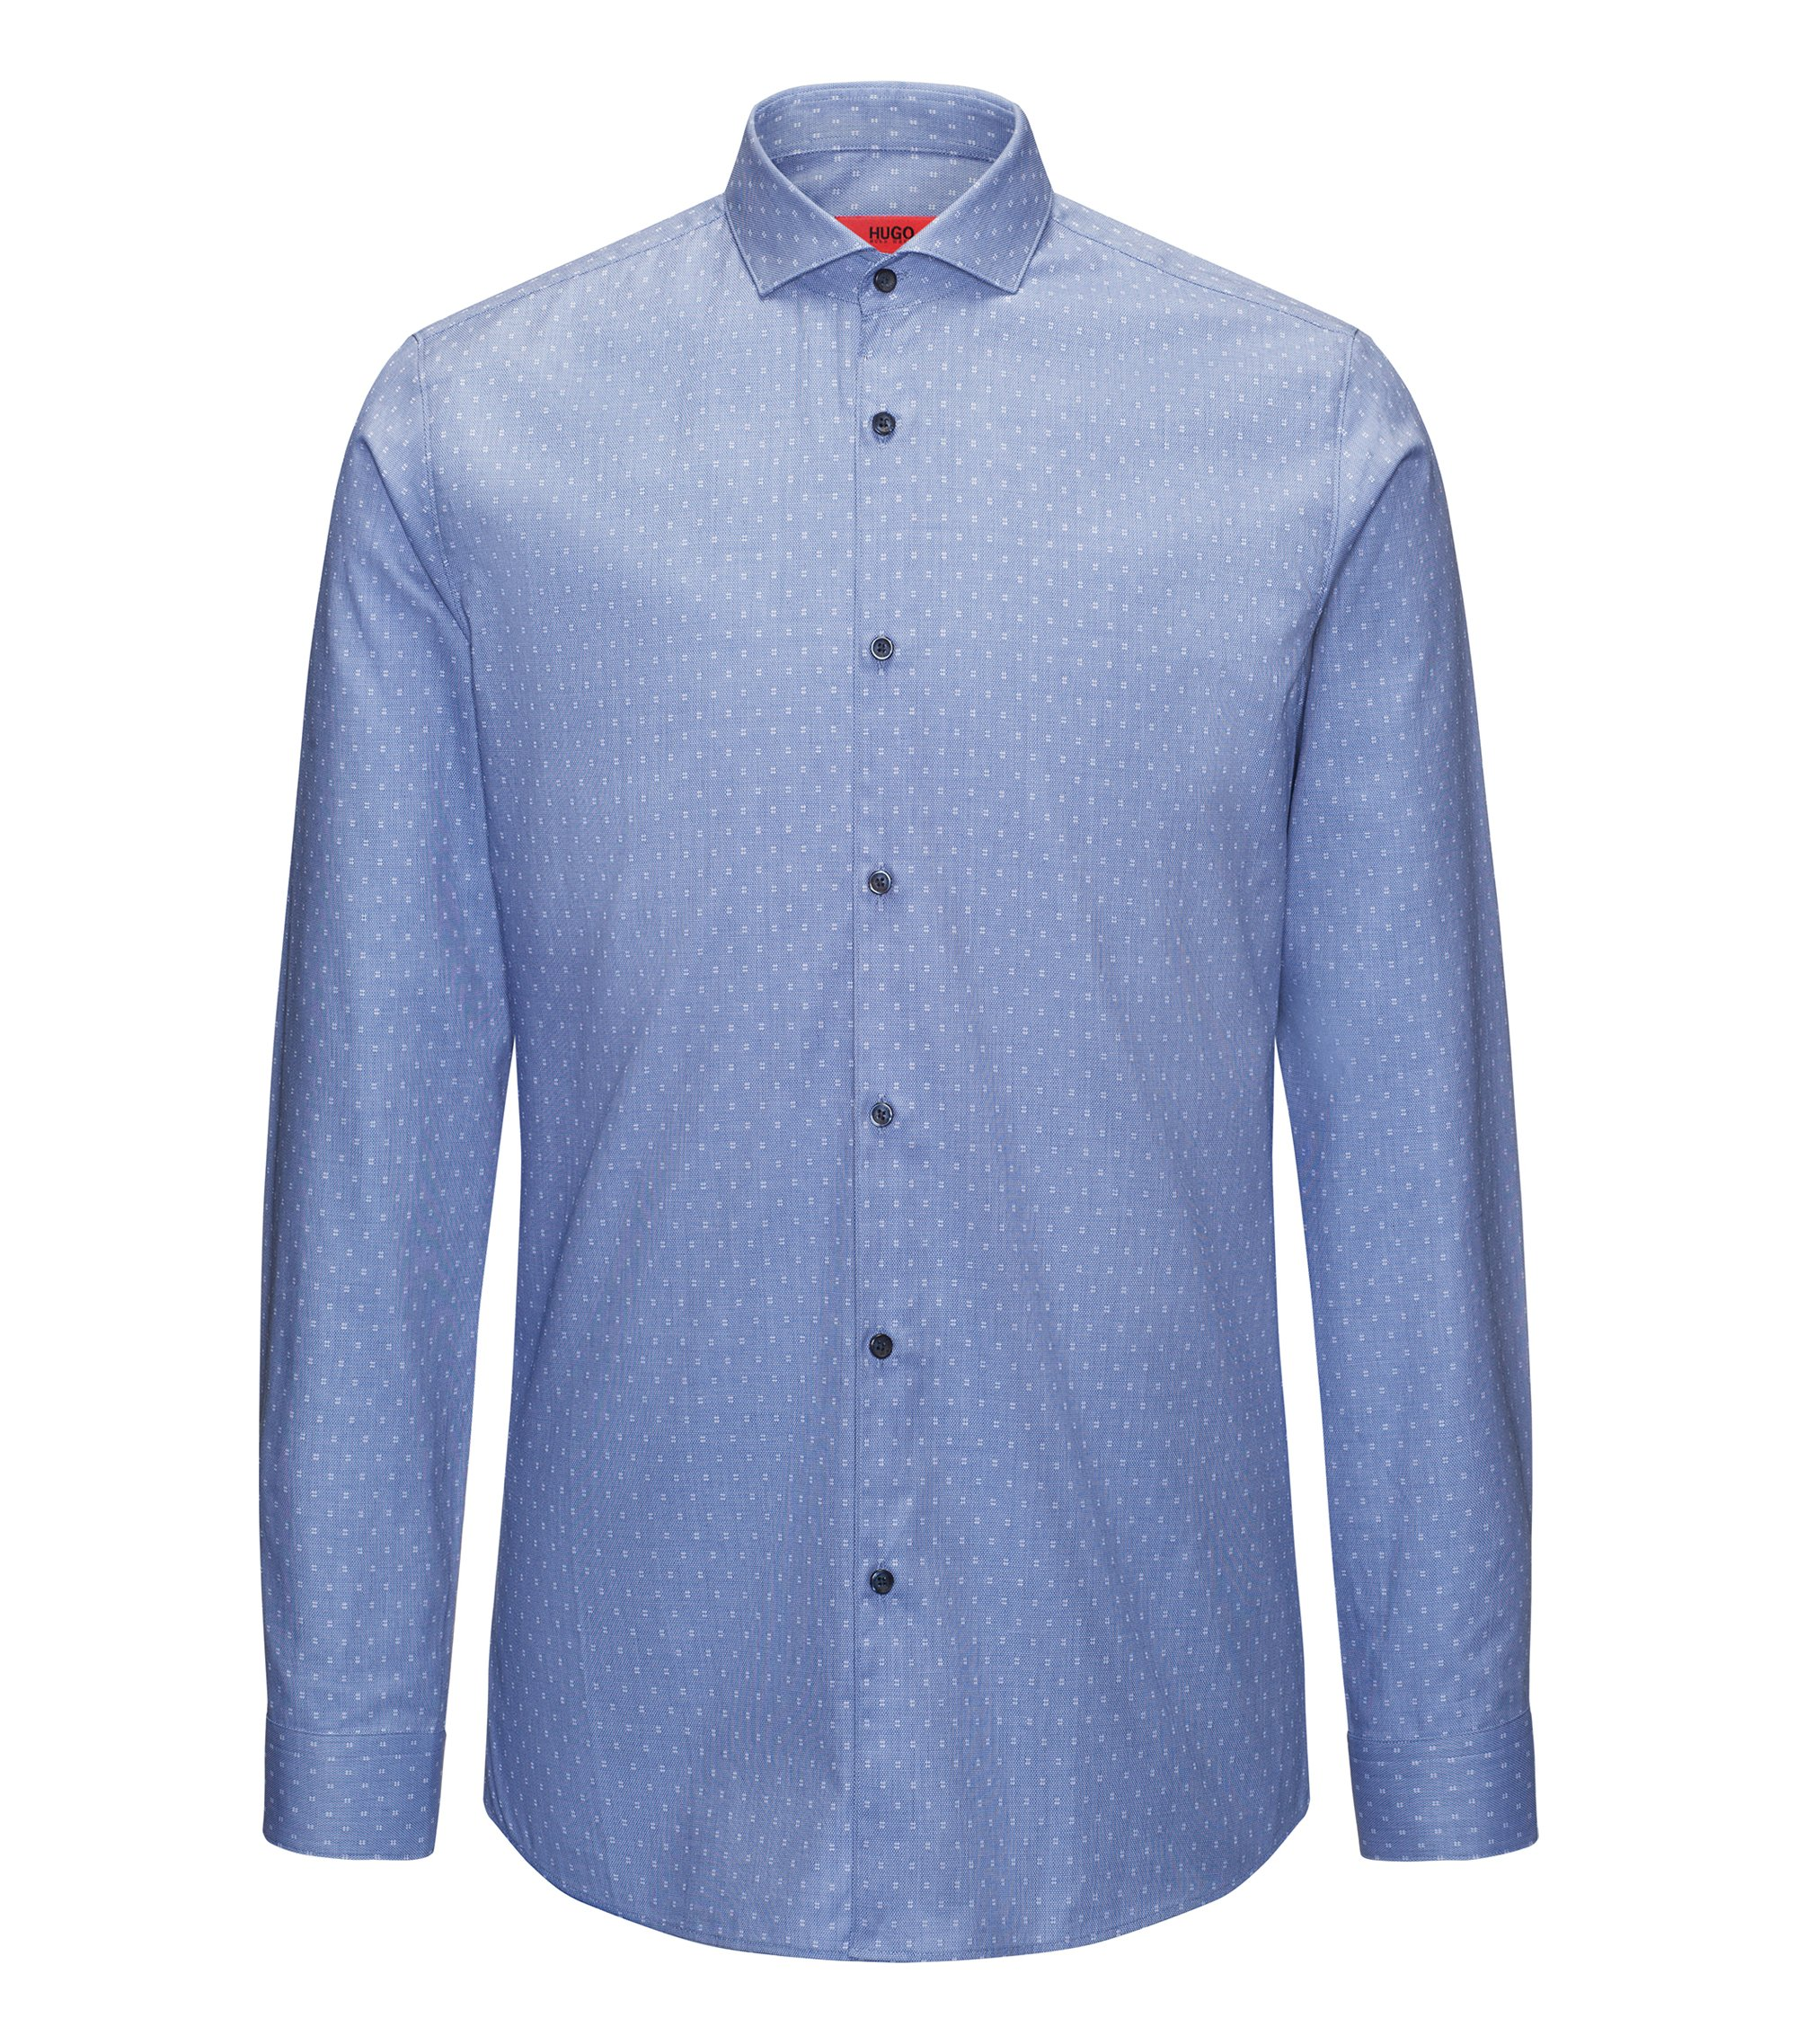 Hashtag Cotton Sport Shirt, Extra Slim Fit | Erriko, Blue